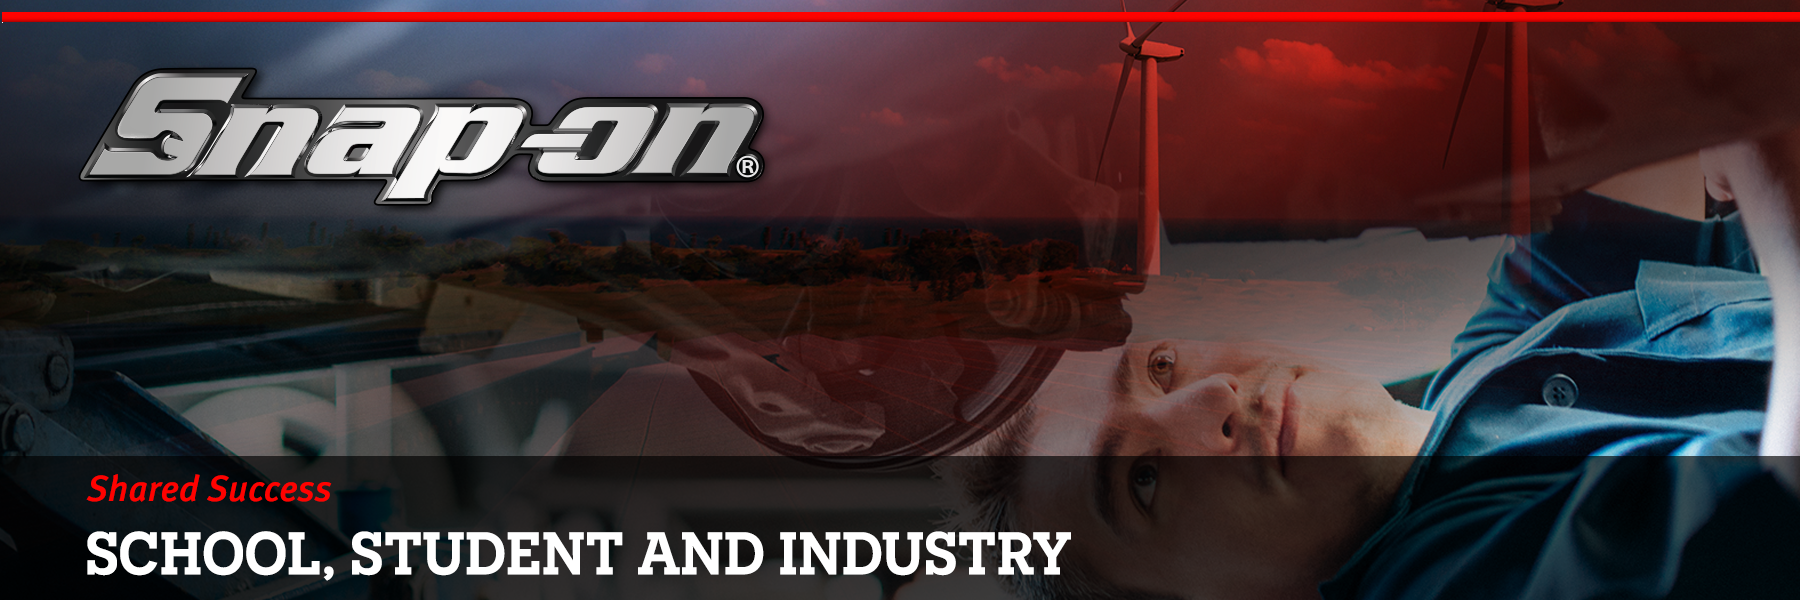 snapon-banner-industry-partner-page-3